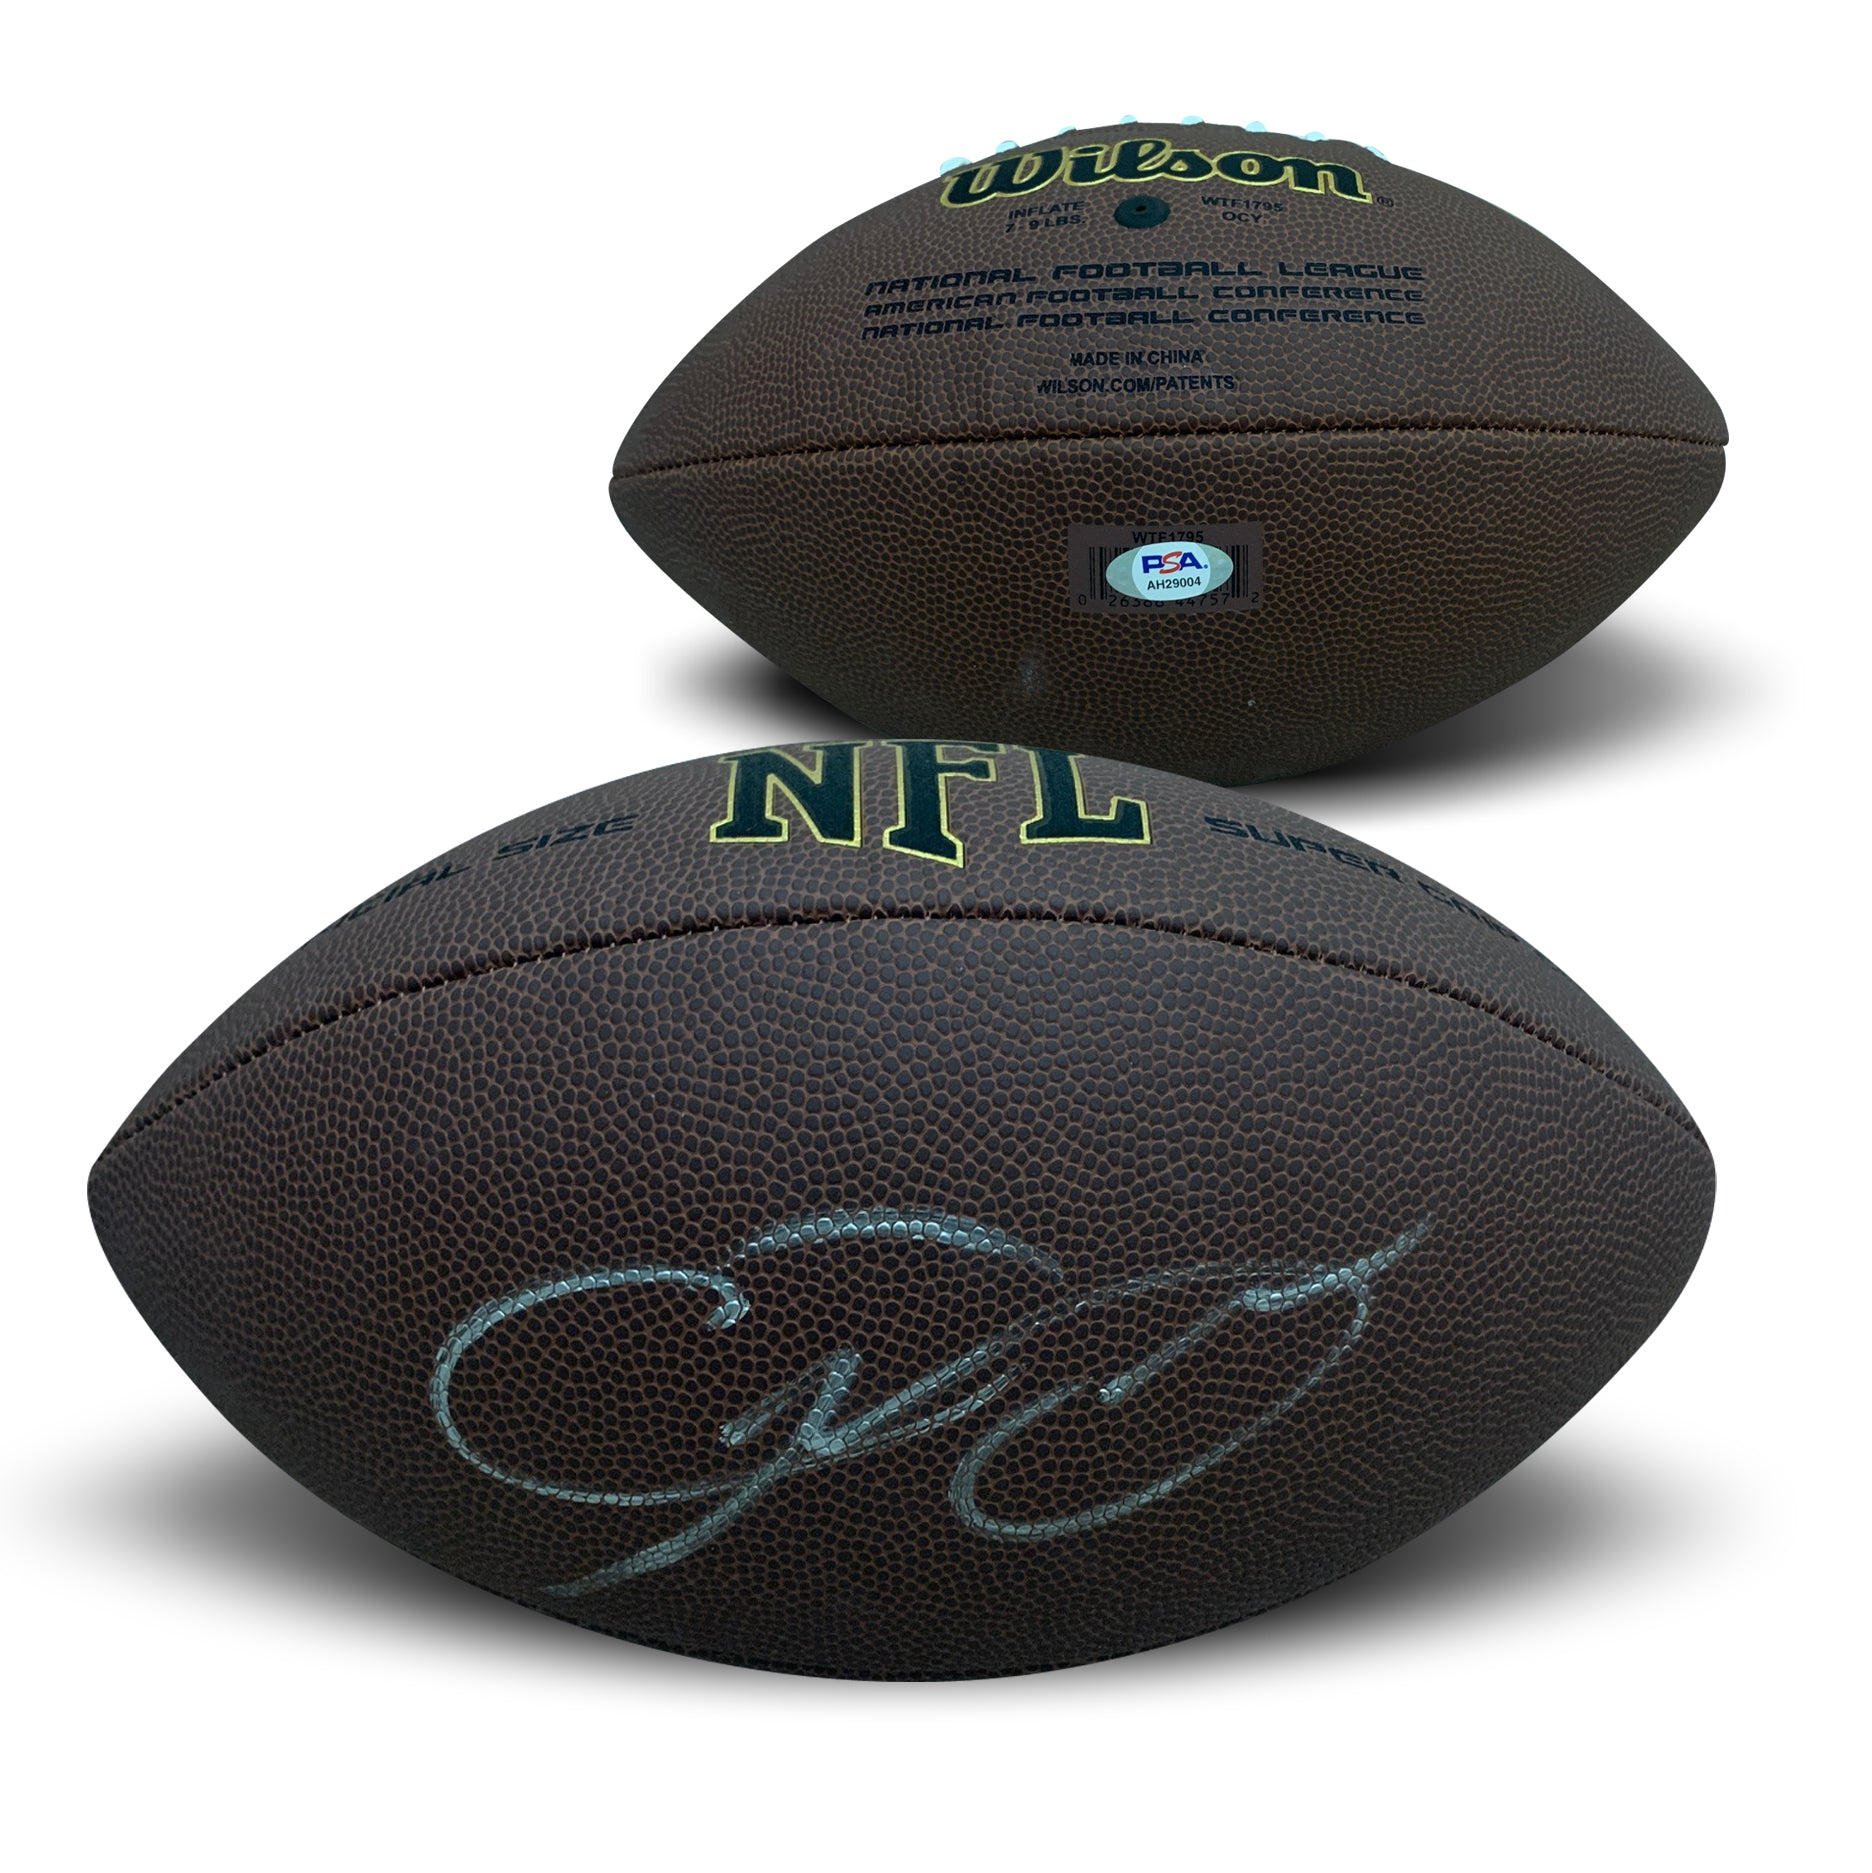 Odell Beckham Jr Cleveland Browns Autographed NFL Signed Football PSA DNA COA-Powers Sports Memorabilia